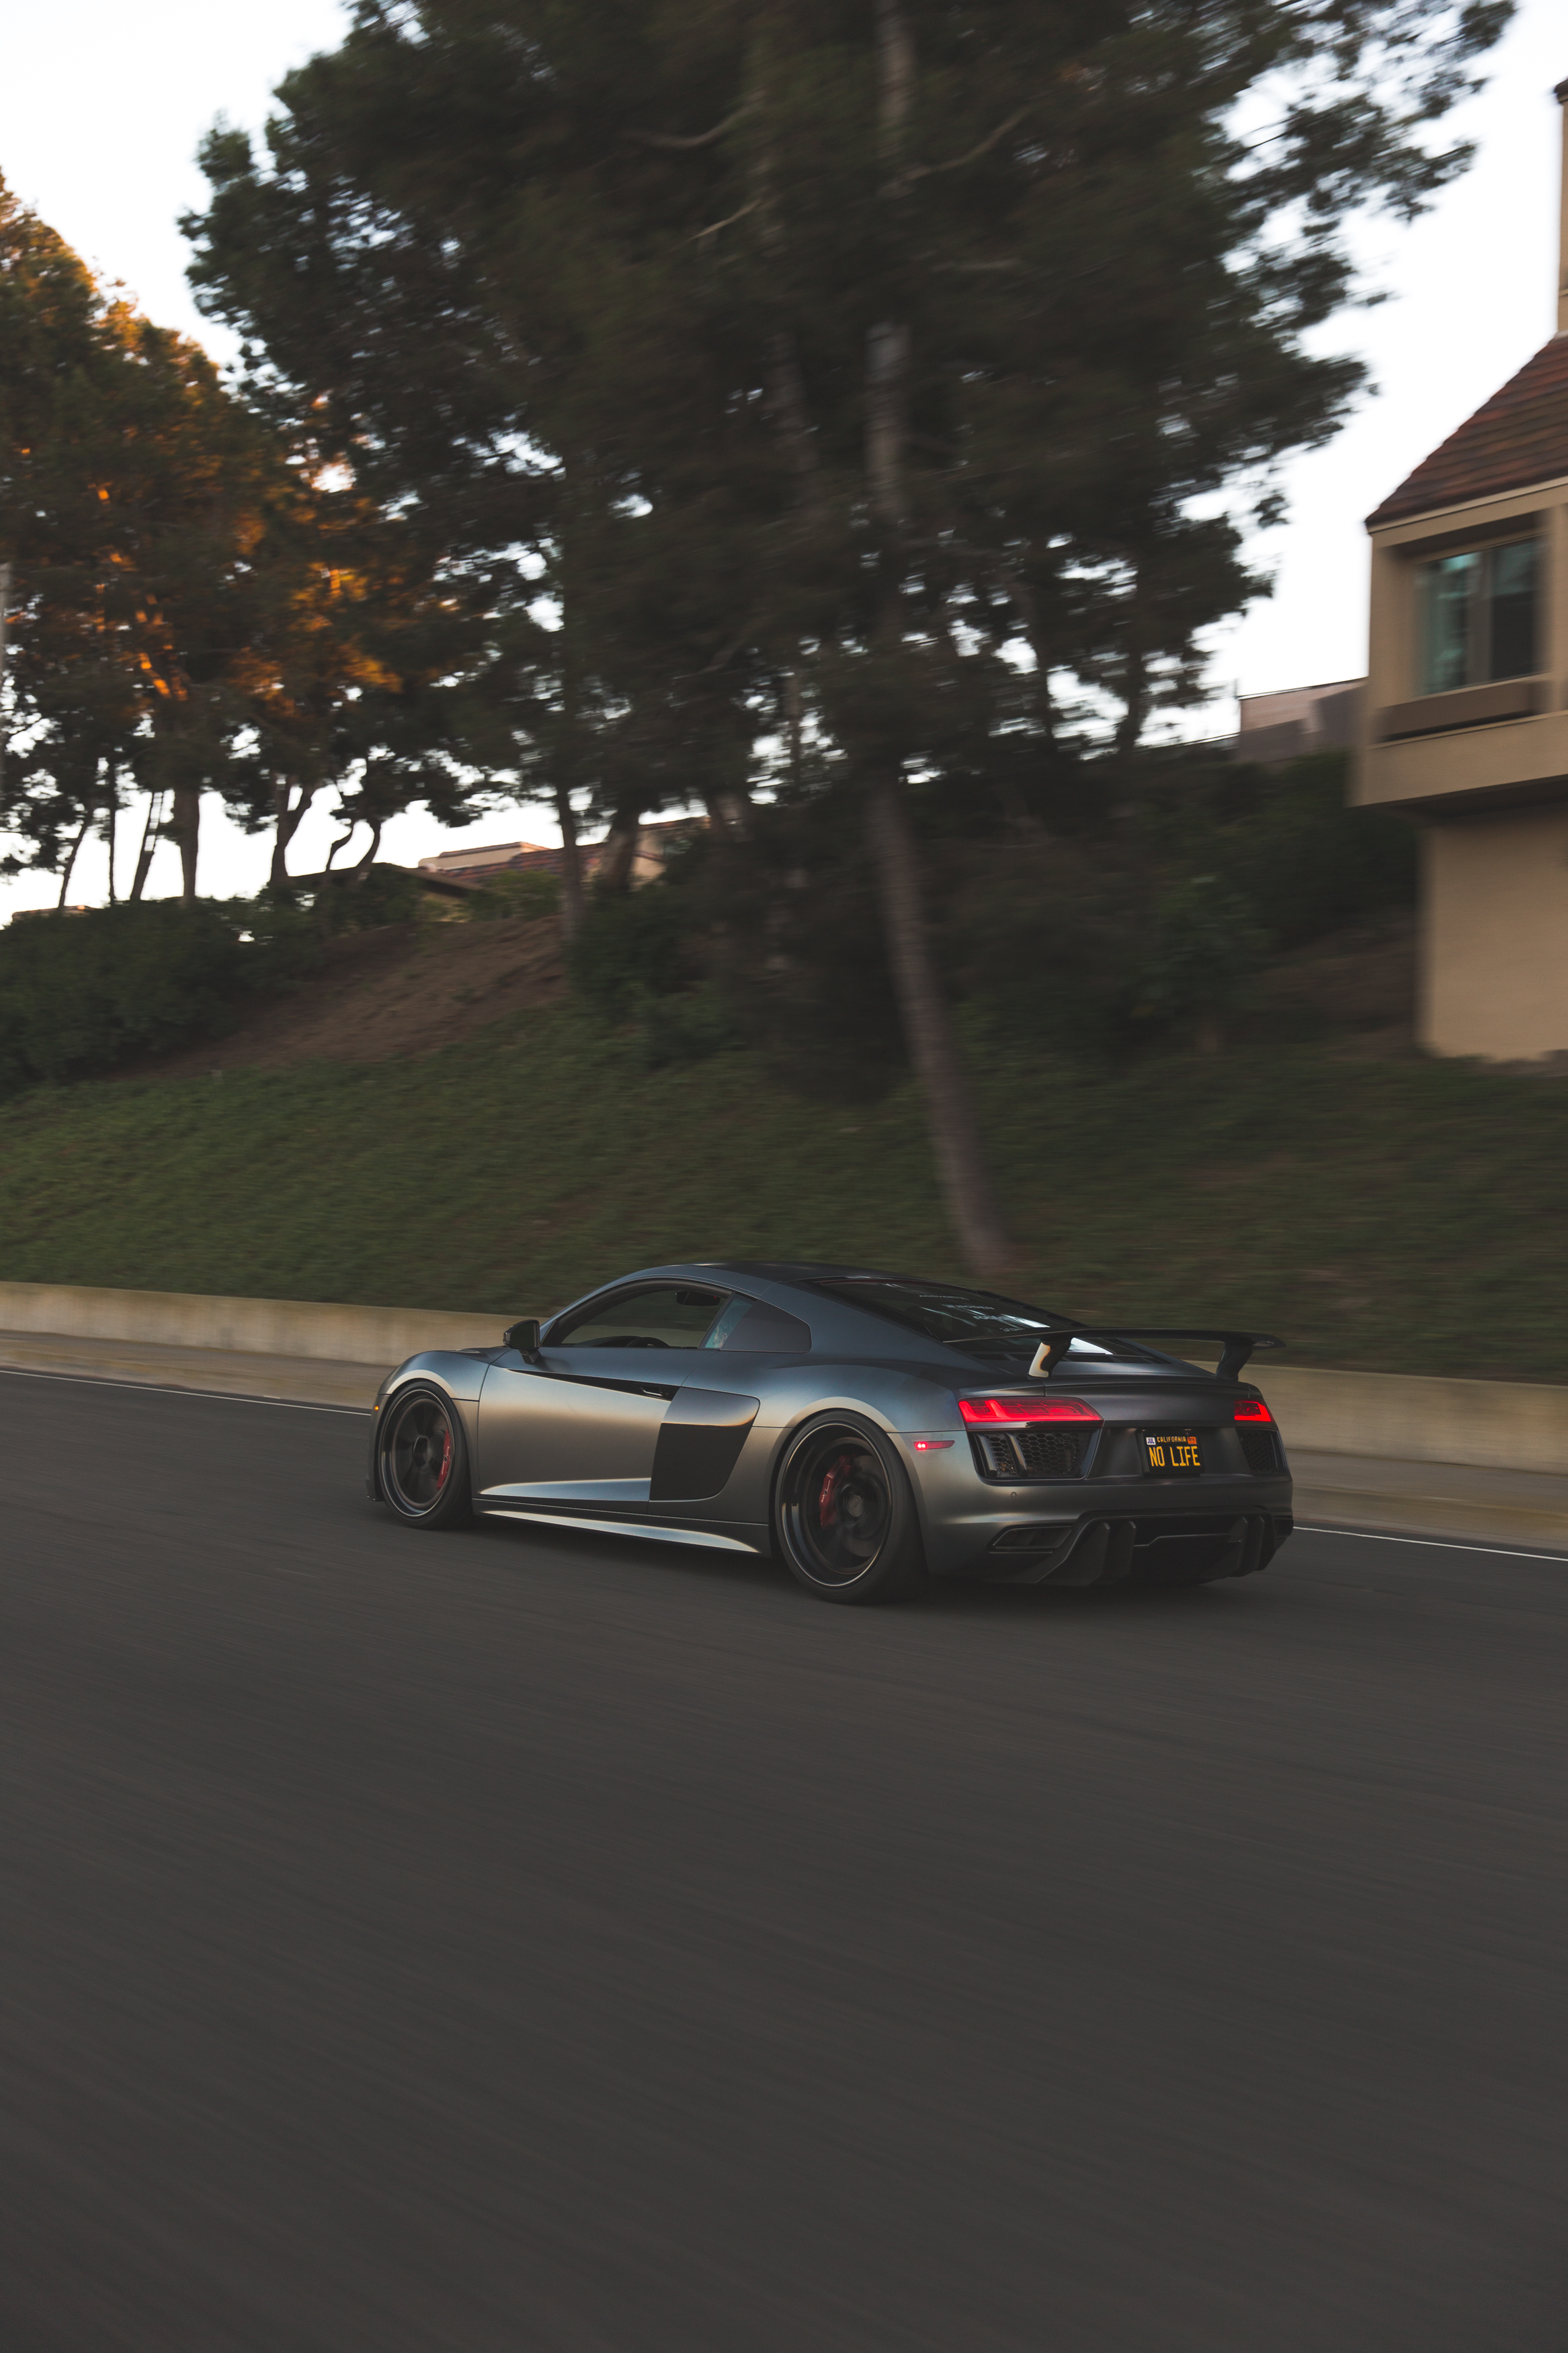 Stay_Driven_Page_R8_Newport-2.jpg